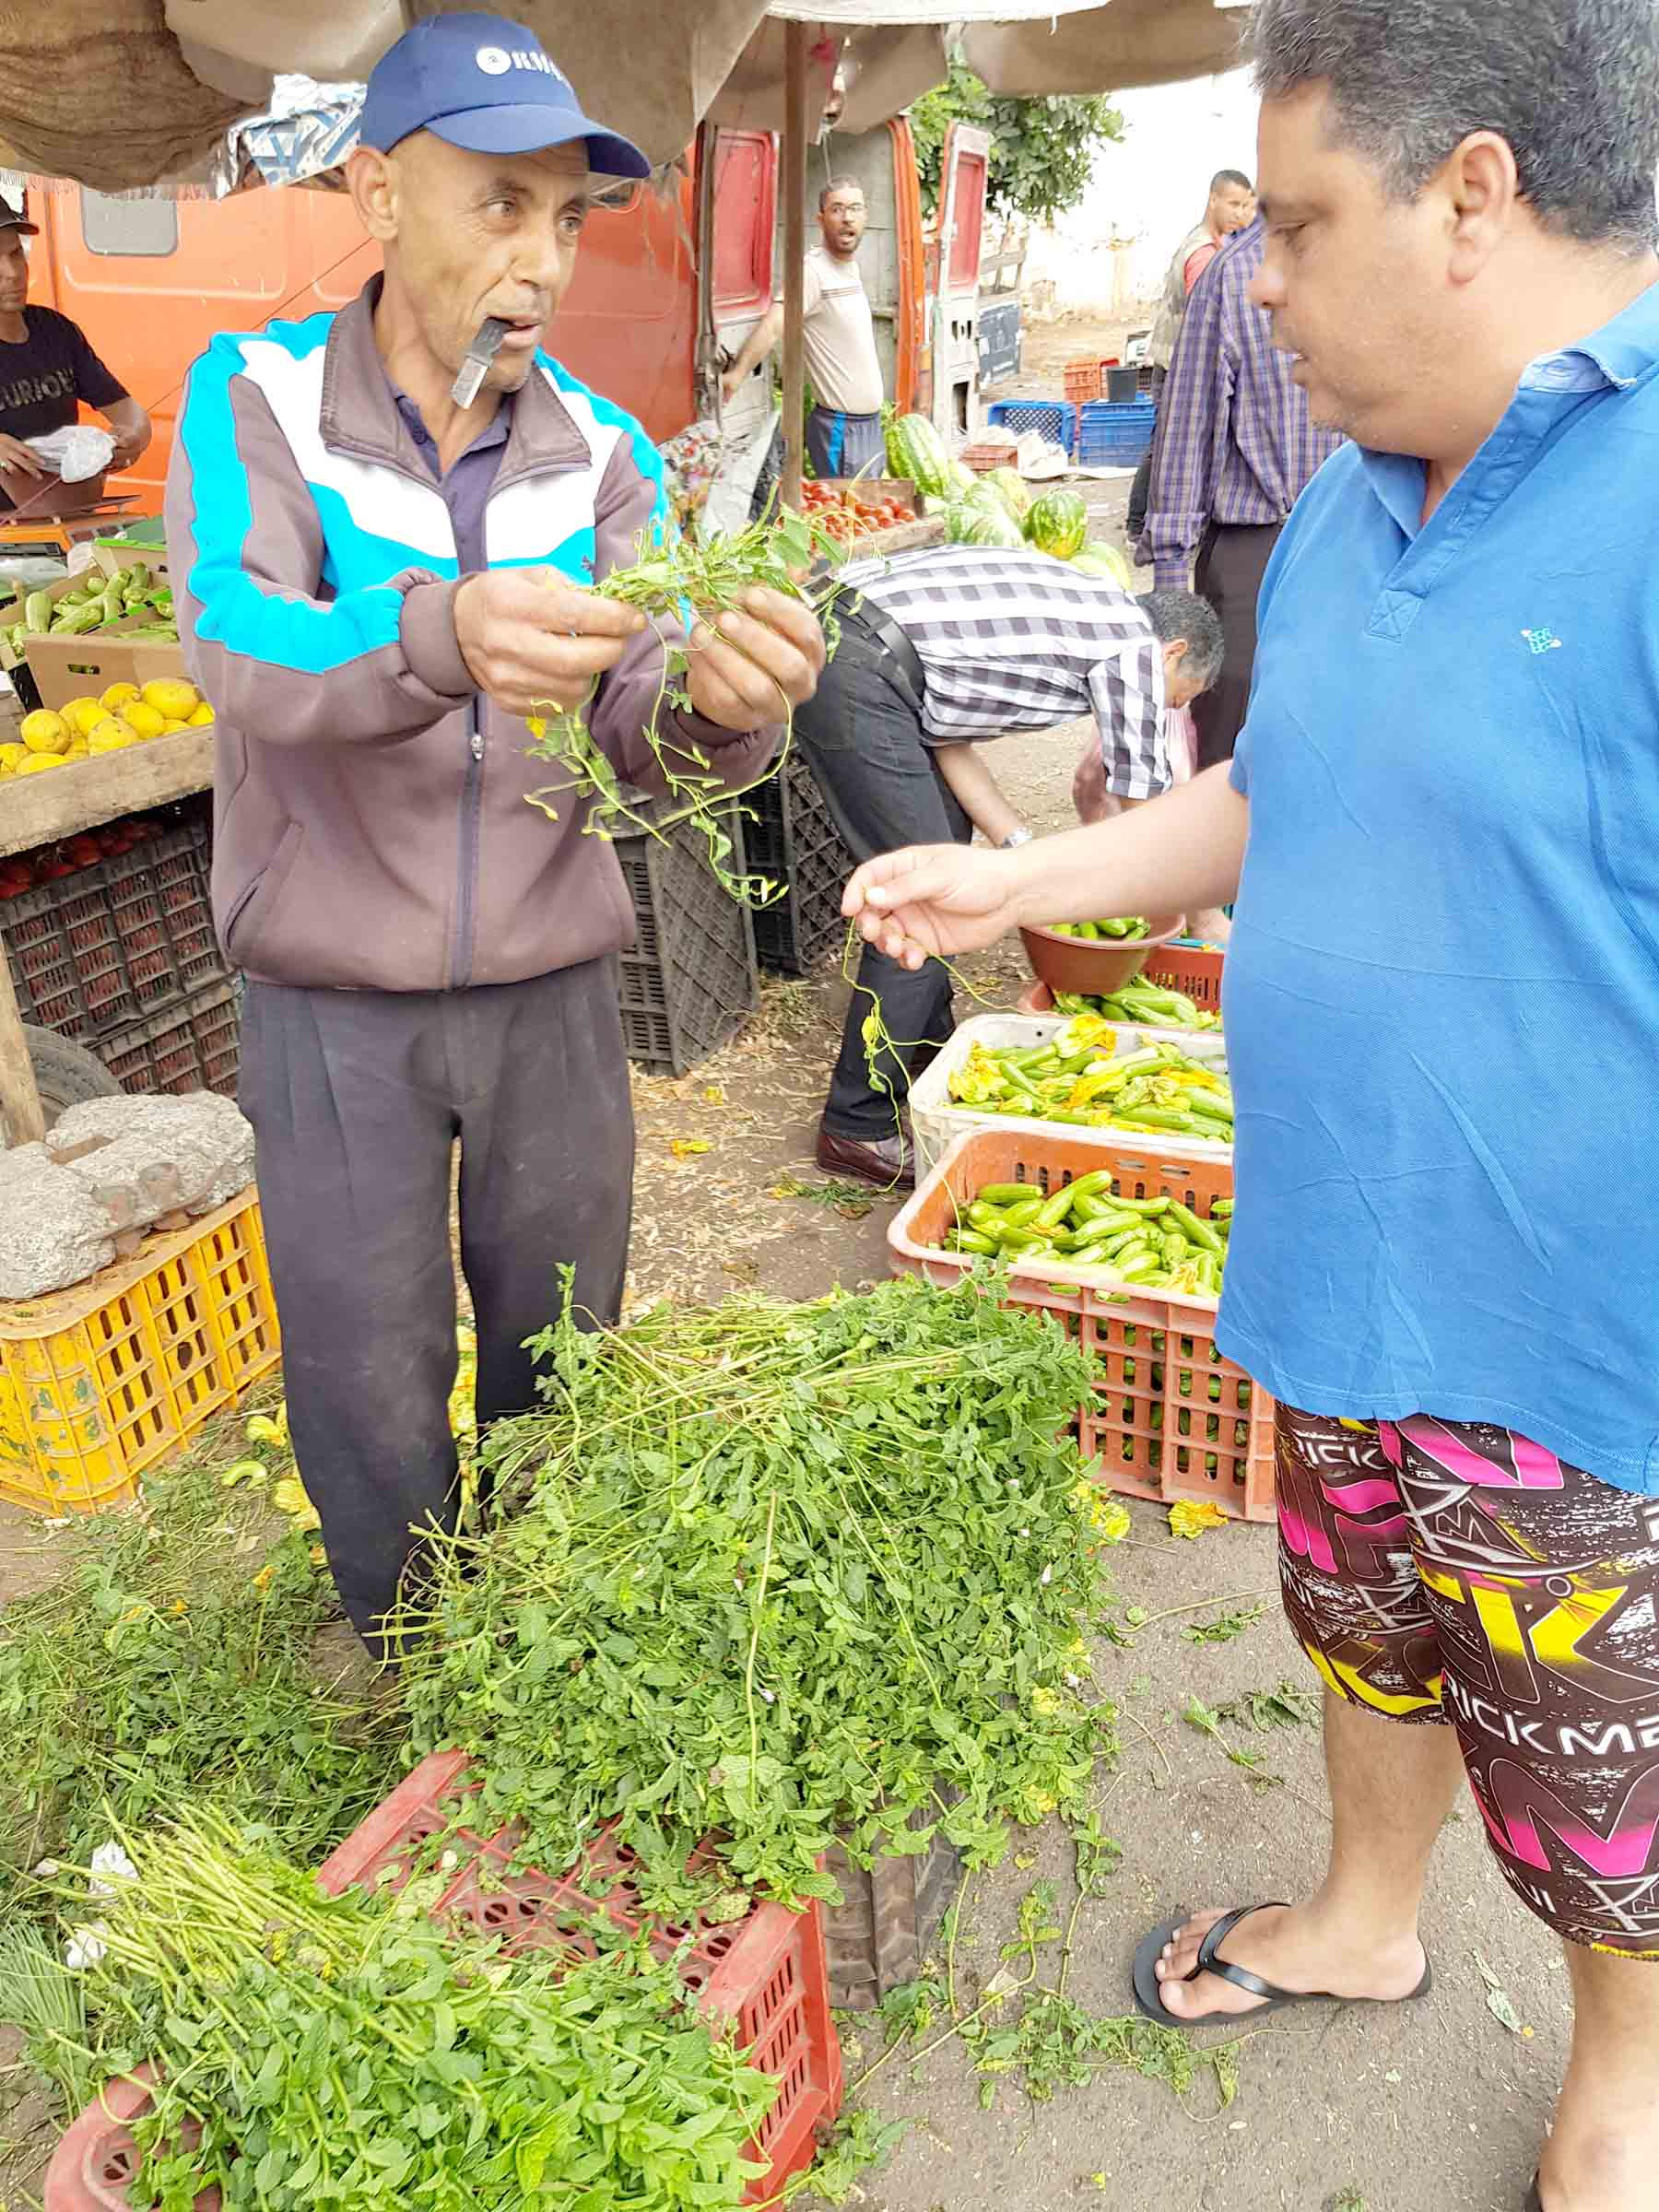 Ditching mint. A mint seller shows the quality of mint to a customer.(Saad Guerraoui)